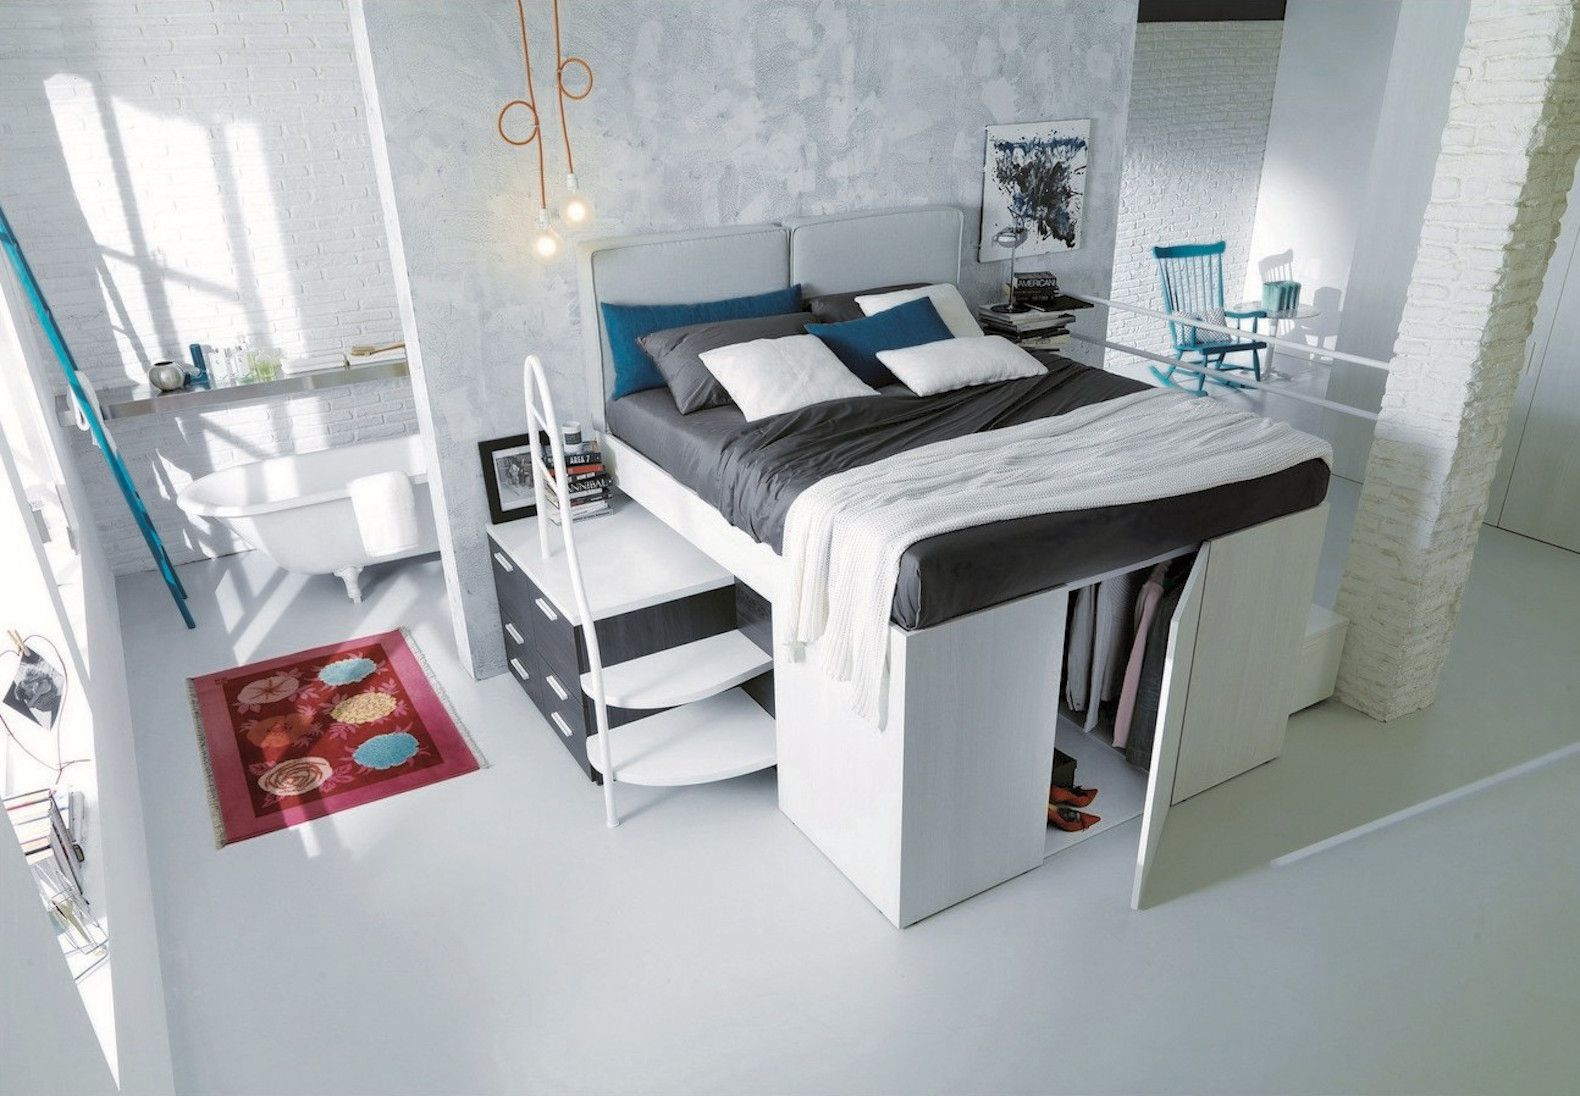 Smart spacesaving bed hides a walkin closet underneath Space